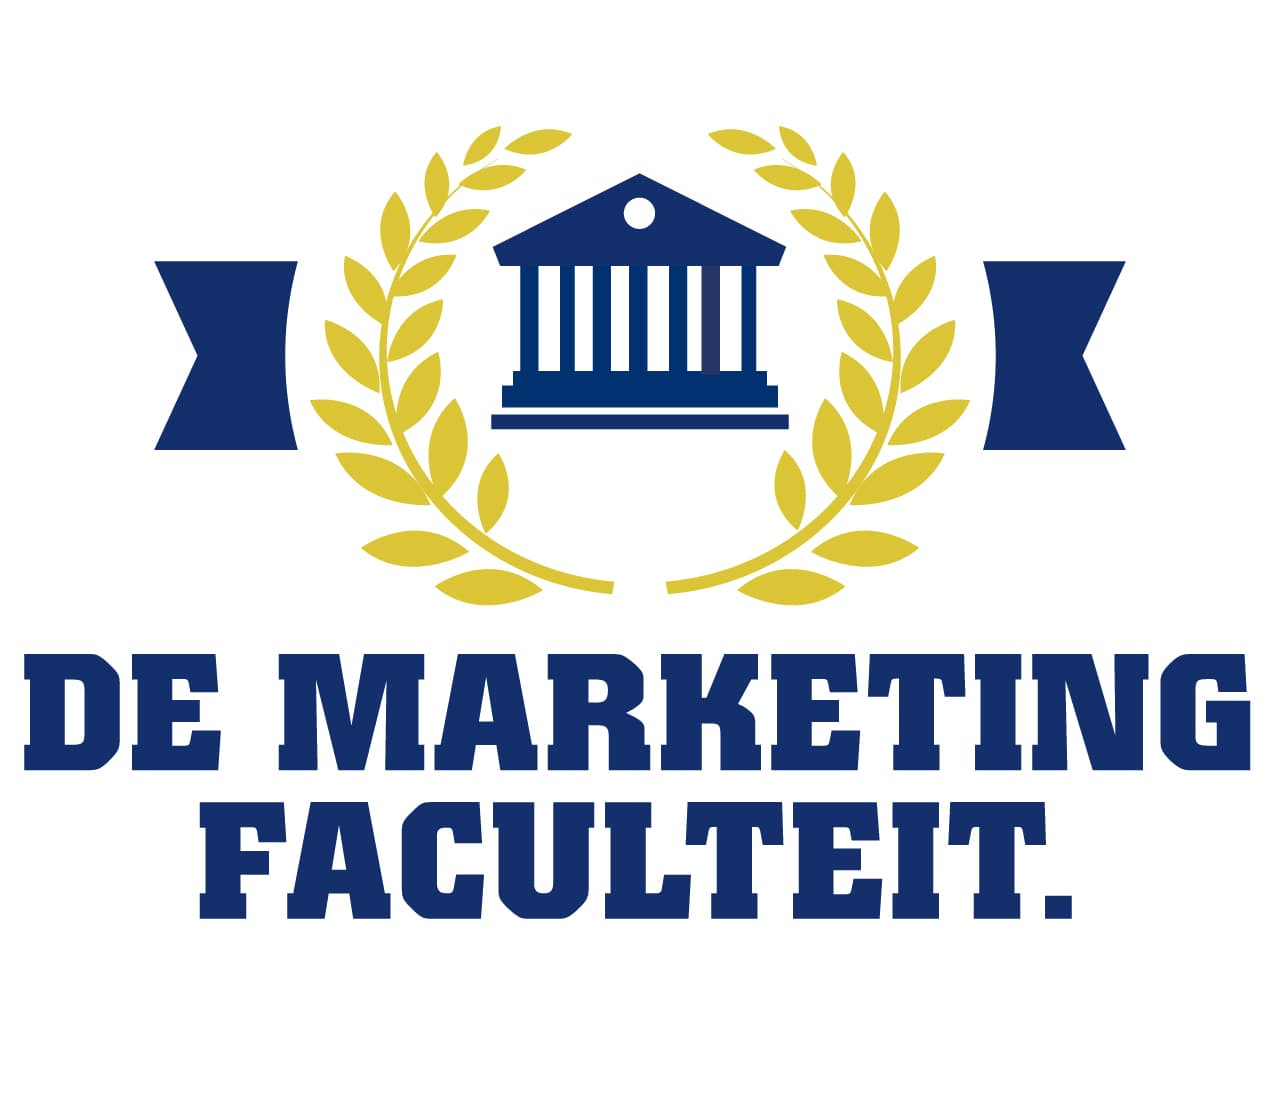 De Marketingfaculteit